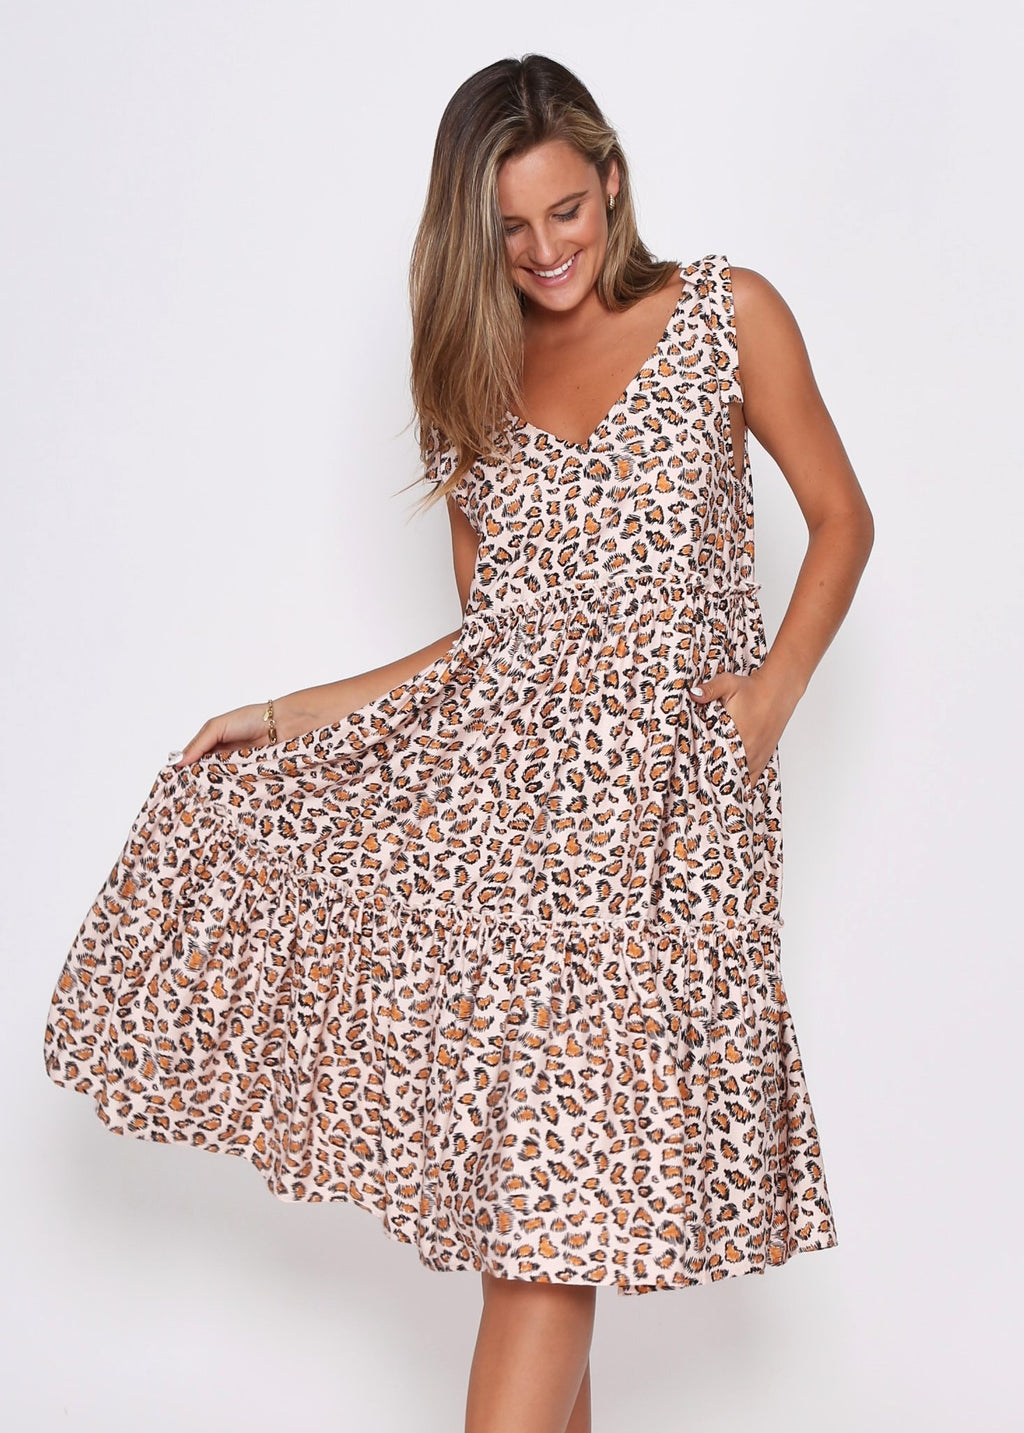 NEW - LYNX DRESS - TAN LEOPARD